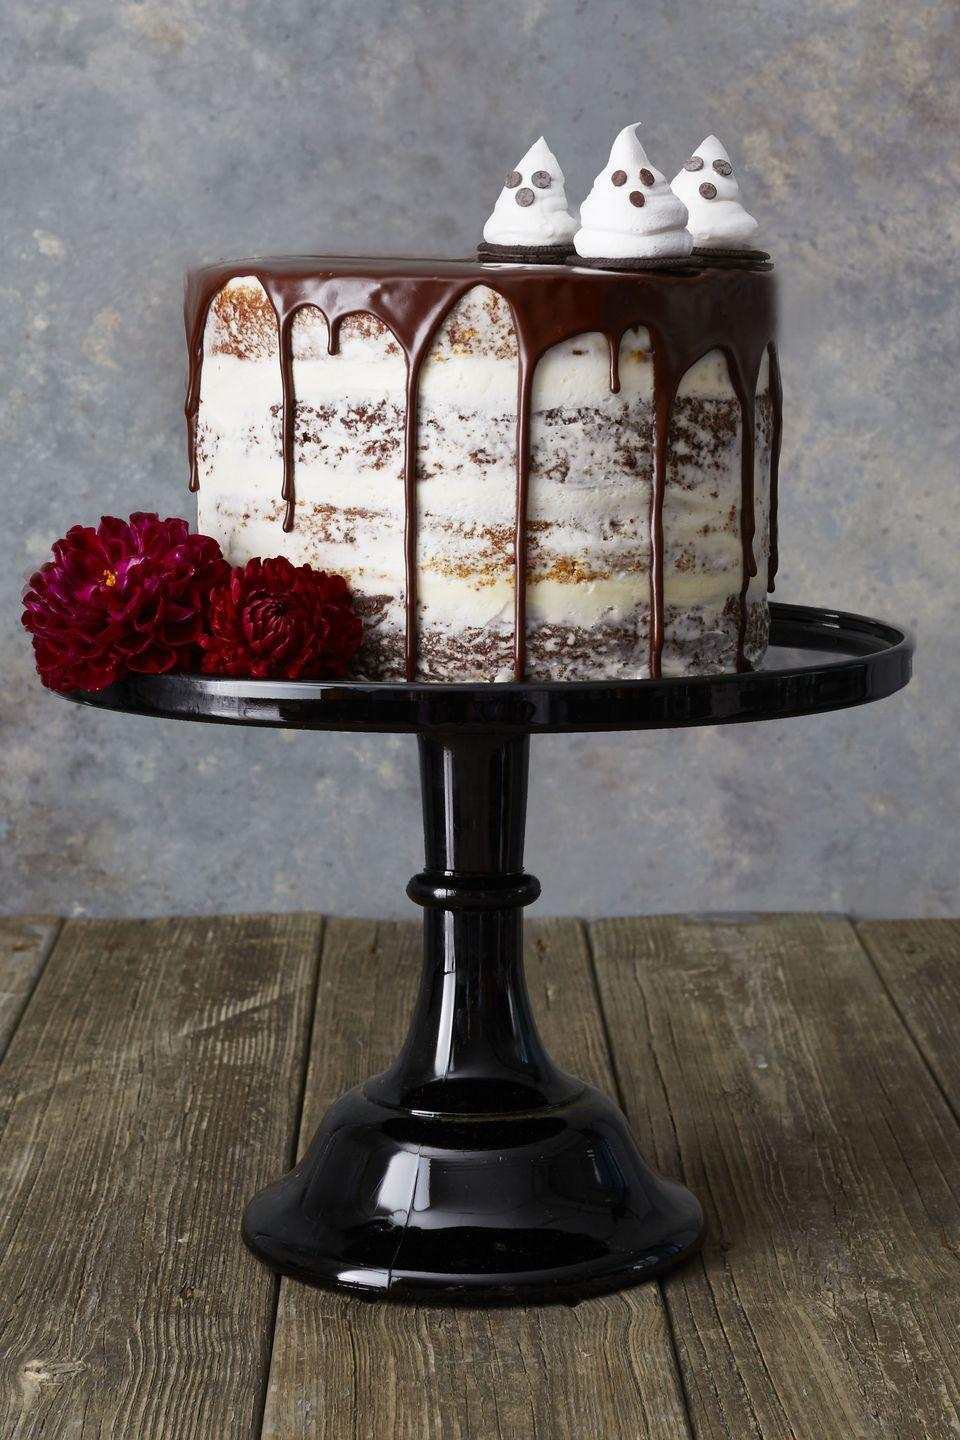 """<p>Look at that drizzle. And the cake. Well, actually, peep all of its deliciousness.</p><p><em><a href=""""https://www.goodhousekeeping.com/food-recipes/dessert/a46068/pumpkin-devils-food-layer-cake-recipe/"""" rel=""""nofollow noopener"""" target=""""_blank"""" data-ylk=""""slk:Get the recipe for Pumpkin and Devil's Food Layer Cake »"""" class=""""link rapid-noclick-resp"""">Get the recipe for Pumpkin and Devil's Food Layer Cake »</a></em></p><p><strong>RELATED:</strong> <a href=""""https://www.goodhousekeeping.com/holidays/halloween-ideas/g2700/halloween-cakes/"""" rel=""""nofollow noopener"""" target=""""_blank"""" data-ylk=""""slk:Easy and Spooky Halloween Cakes That'll Sweeten Up Your Party"""" class=""""link rapid-noclick-resp"""">Easy and Spooky Halloween Cakes That'll Sweeten Up Your Party</a></p>"""